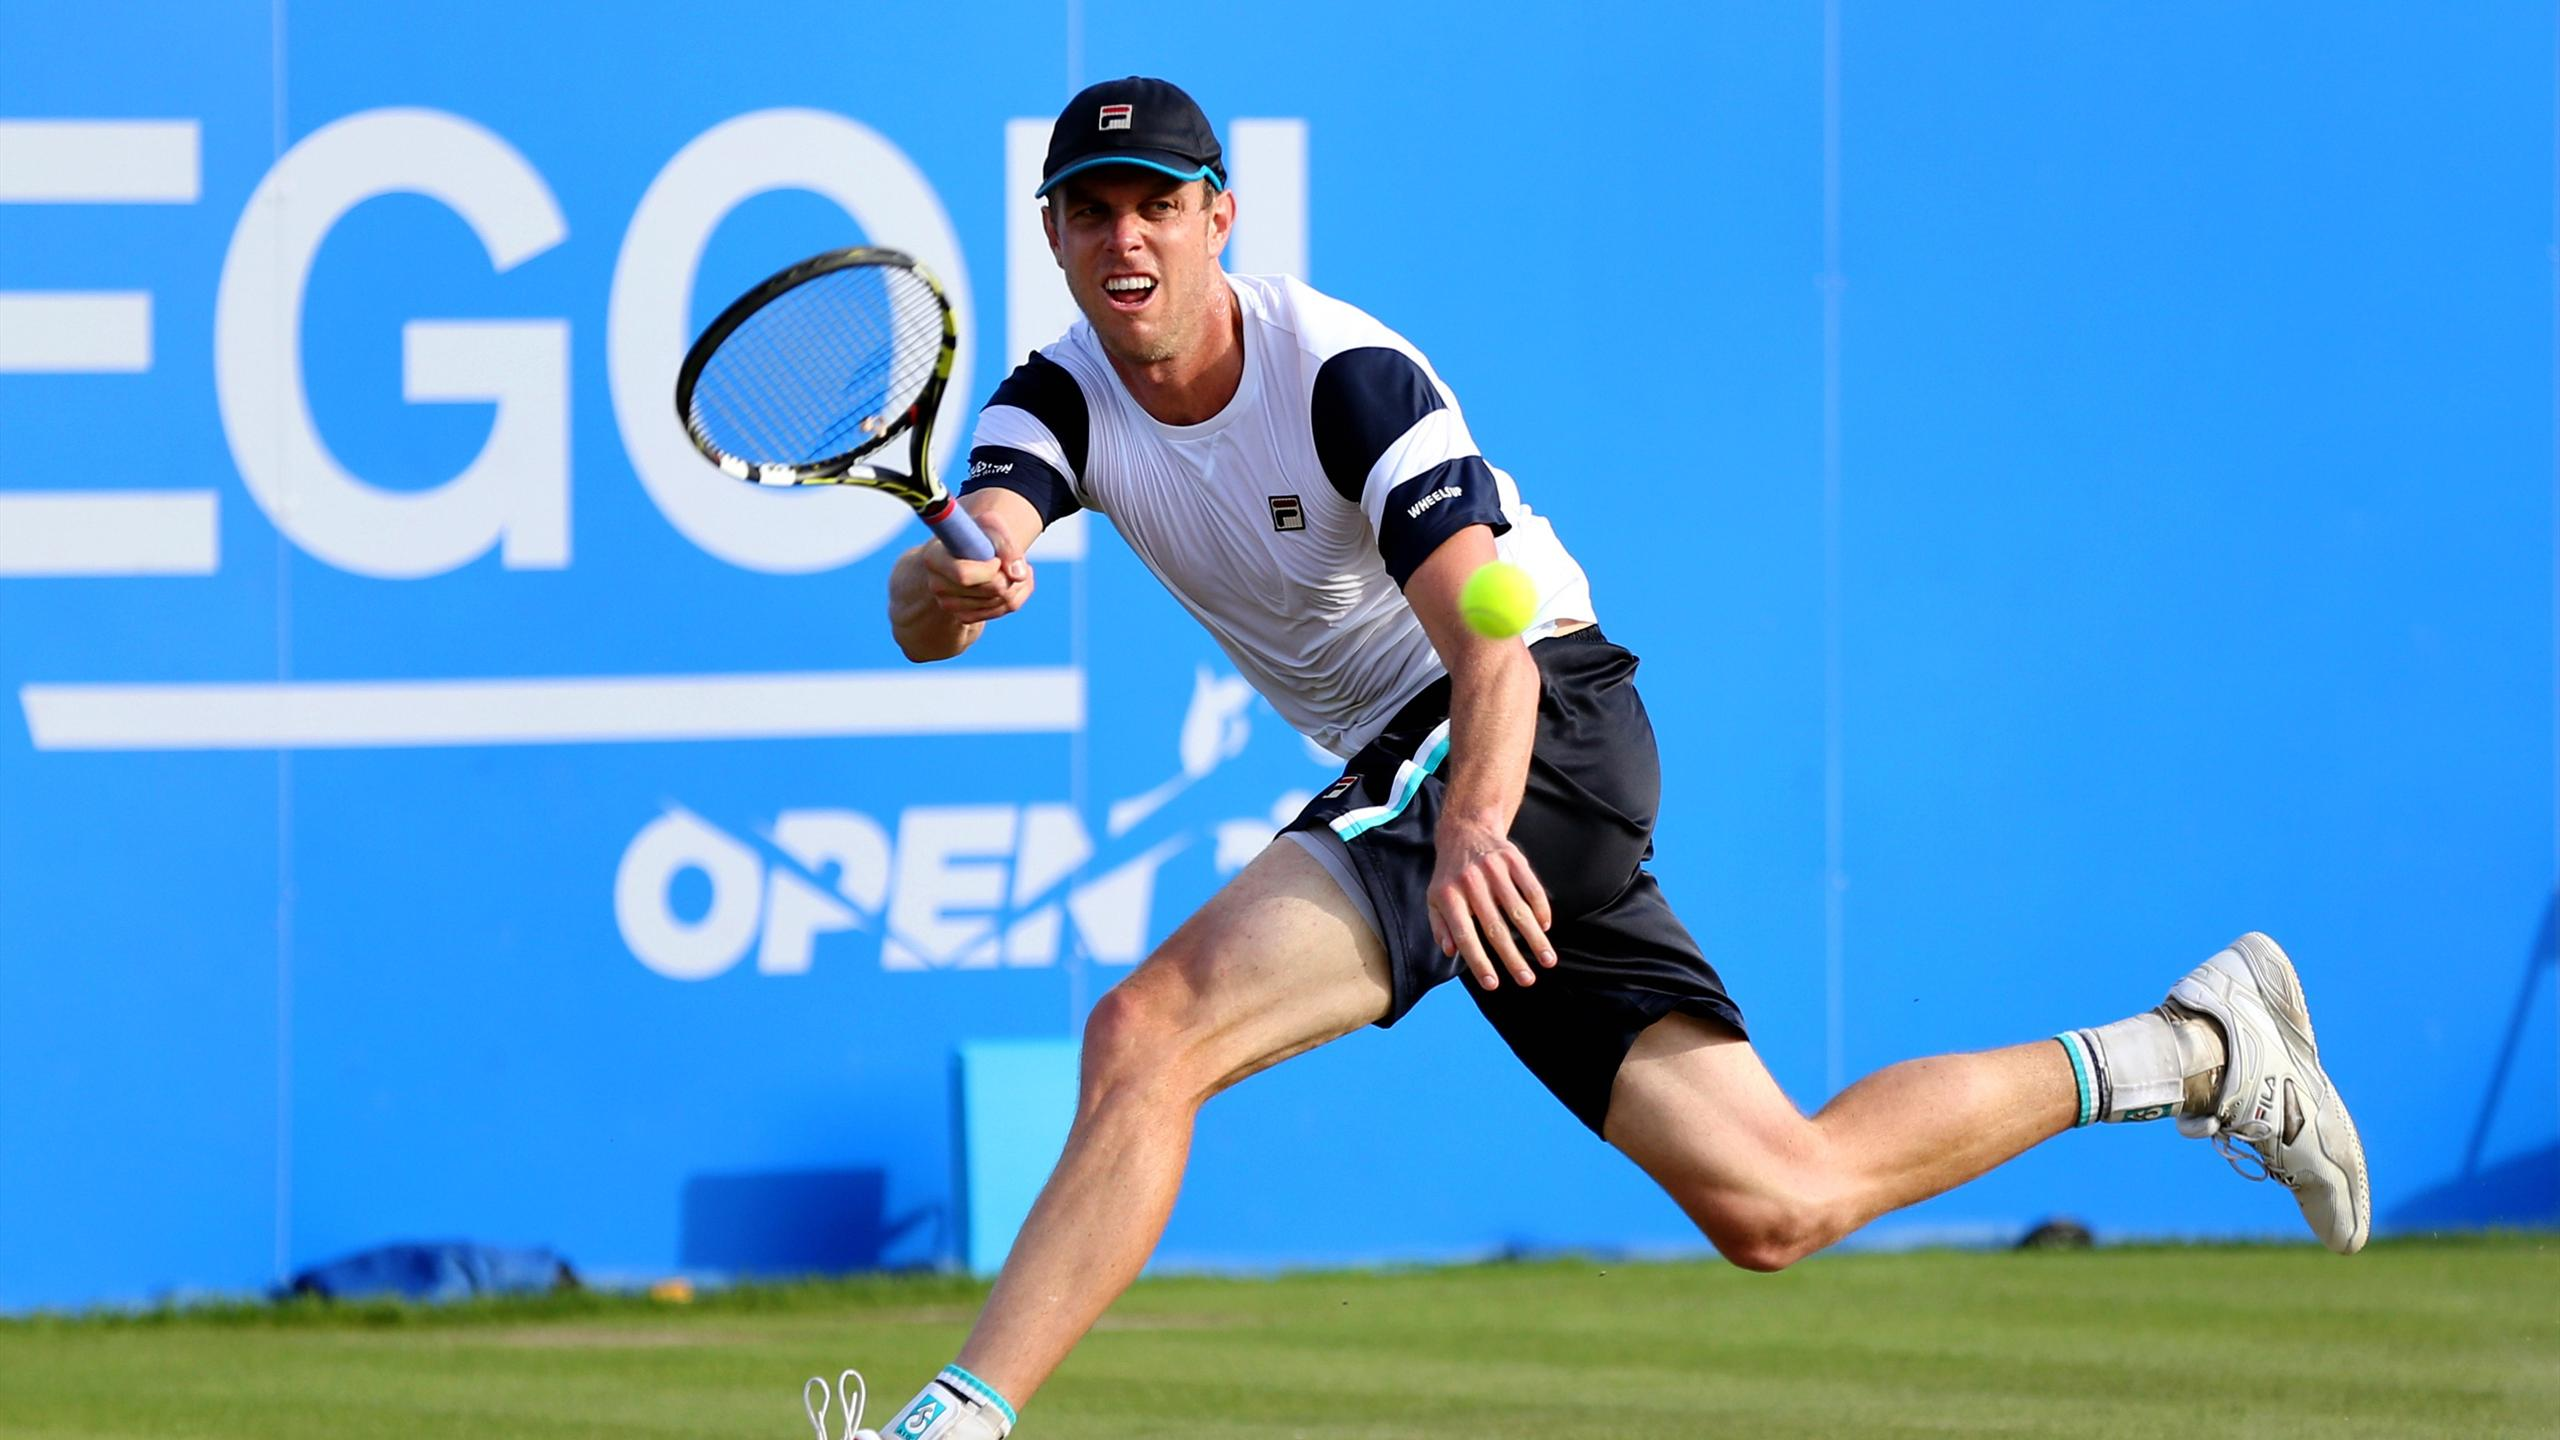 Sam Querrey in action during the fourth round